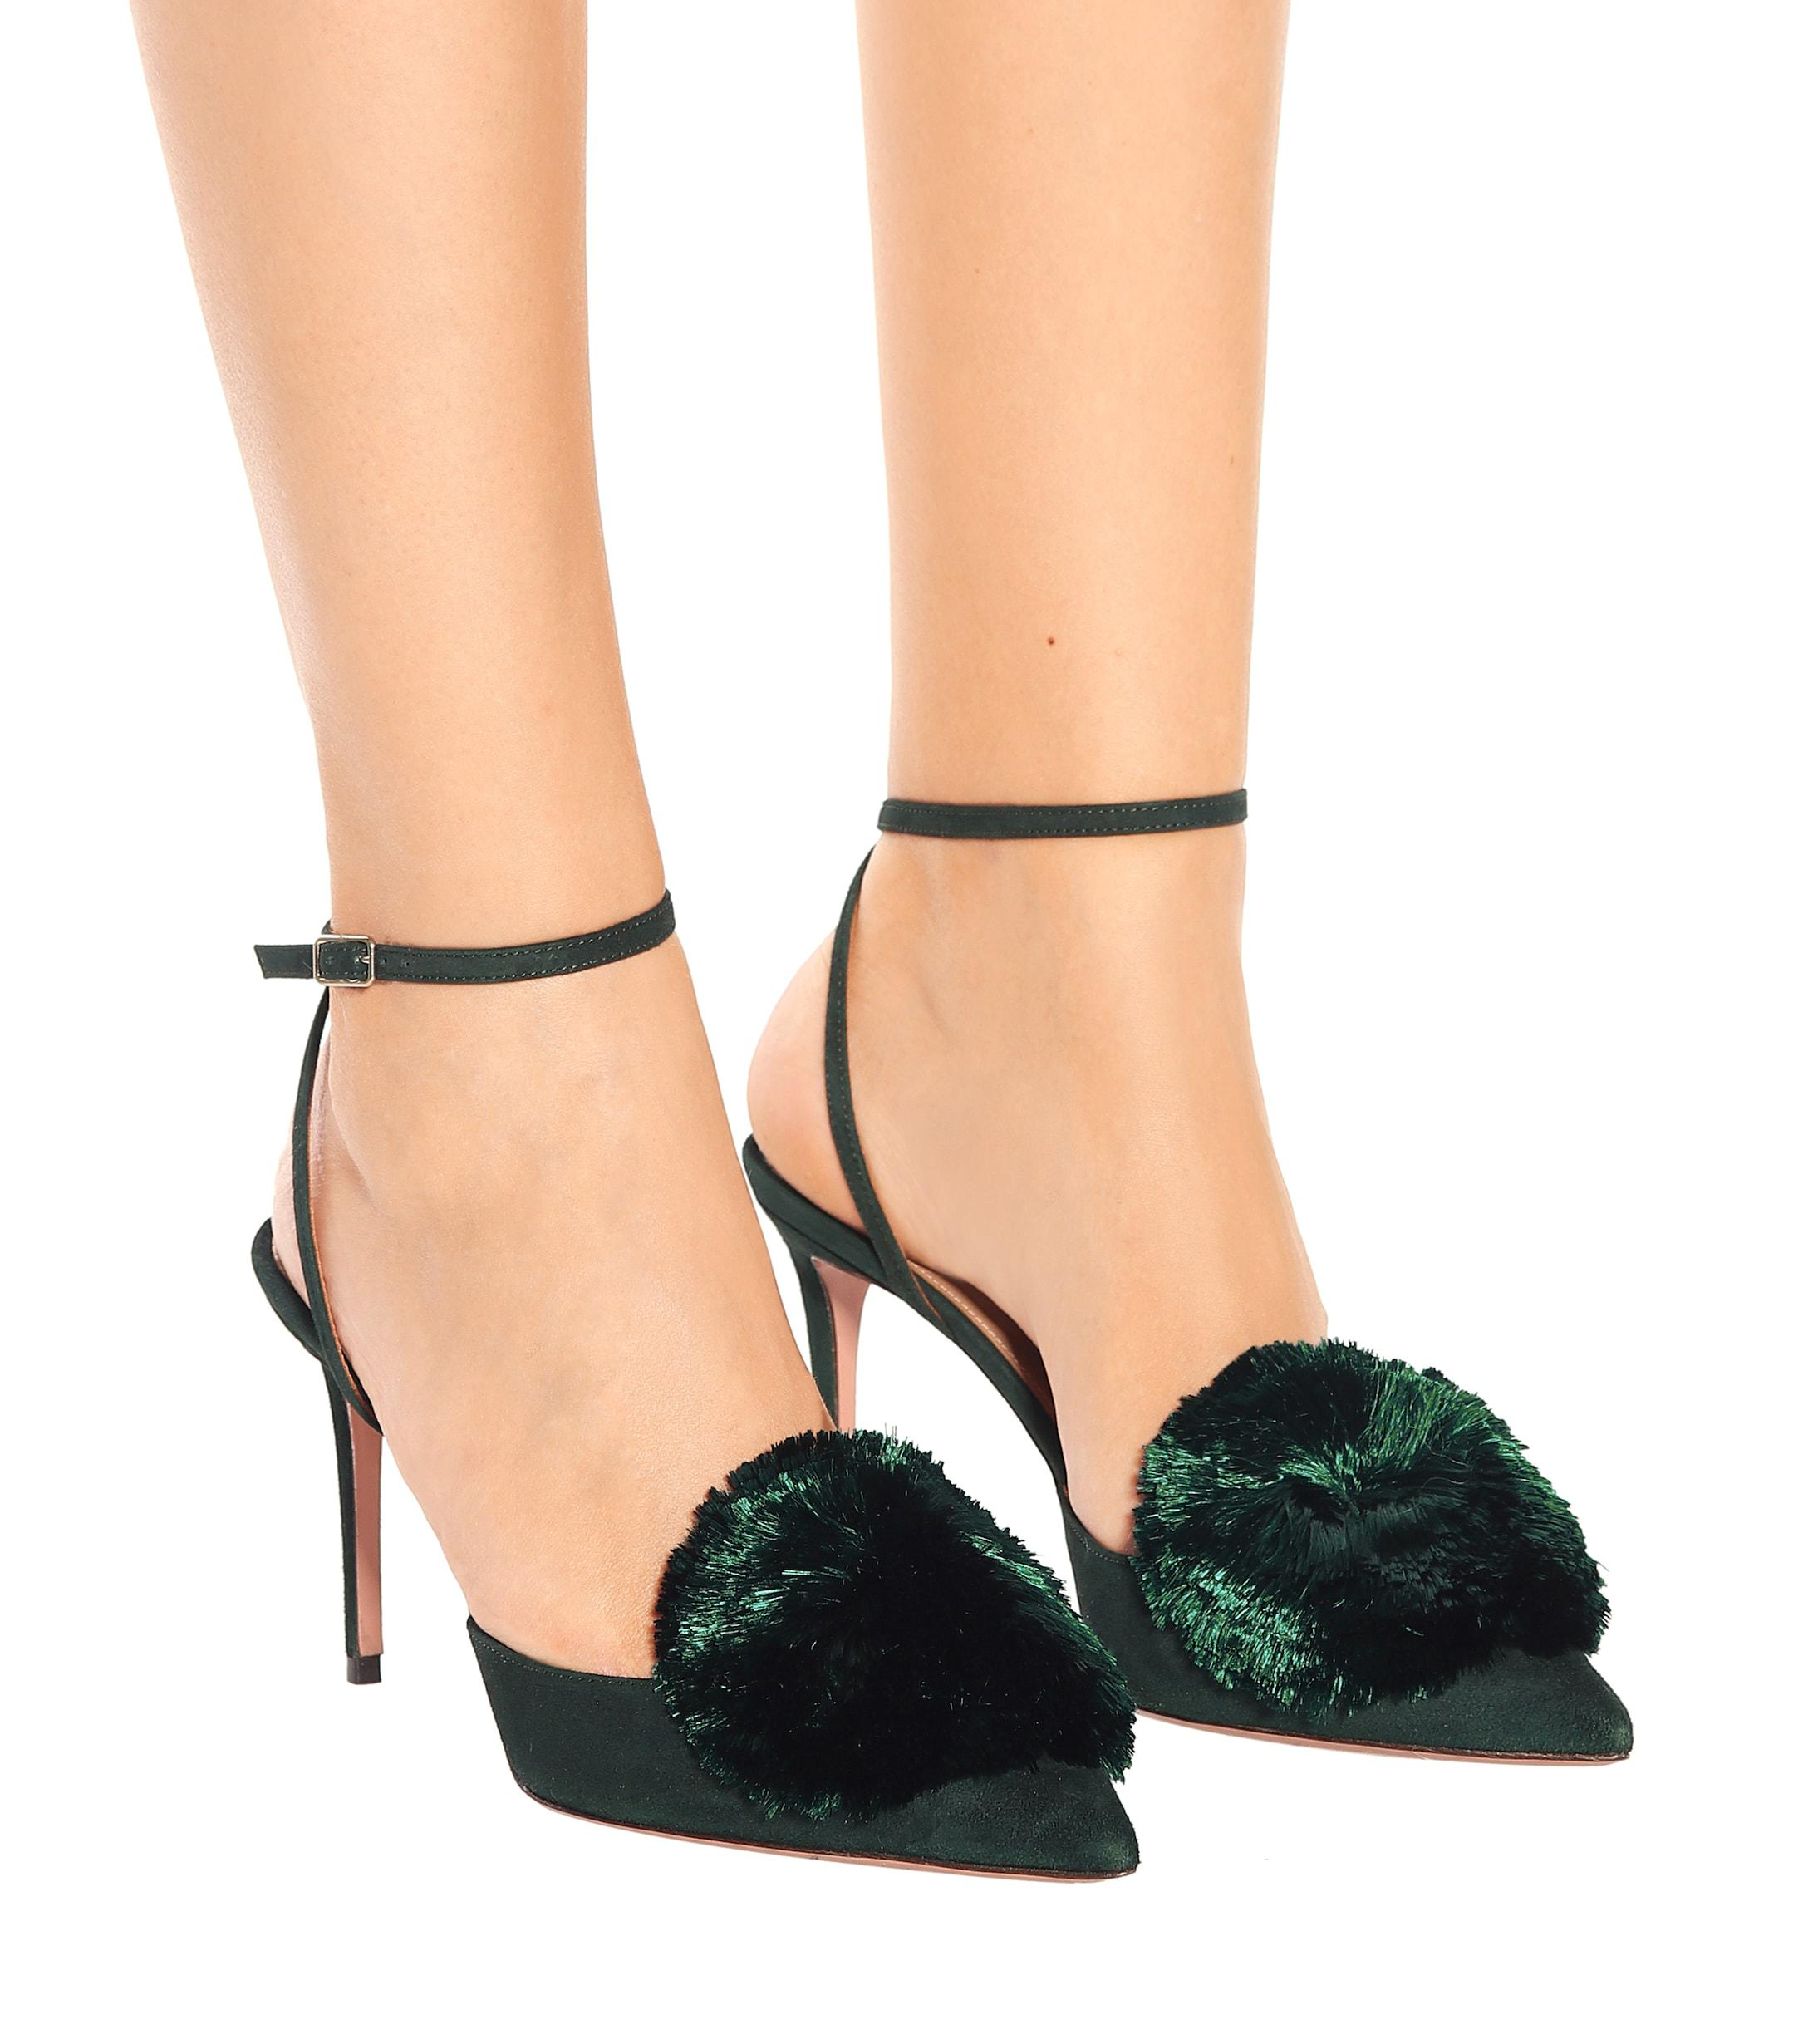 adc783cc1 Aquazzura Green Powder Puff 85 Silk And Leather Pumps in Green - Lyst